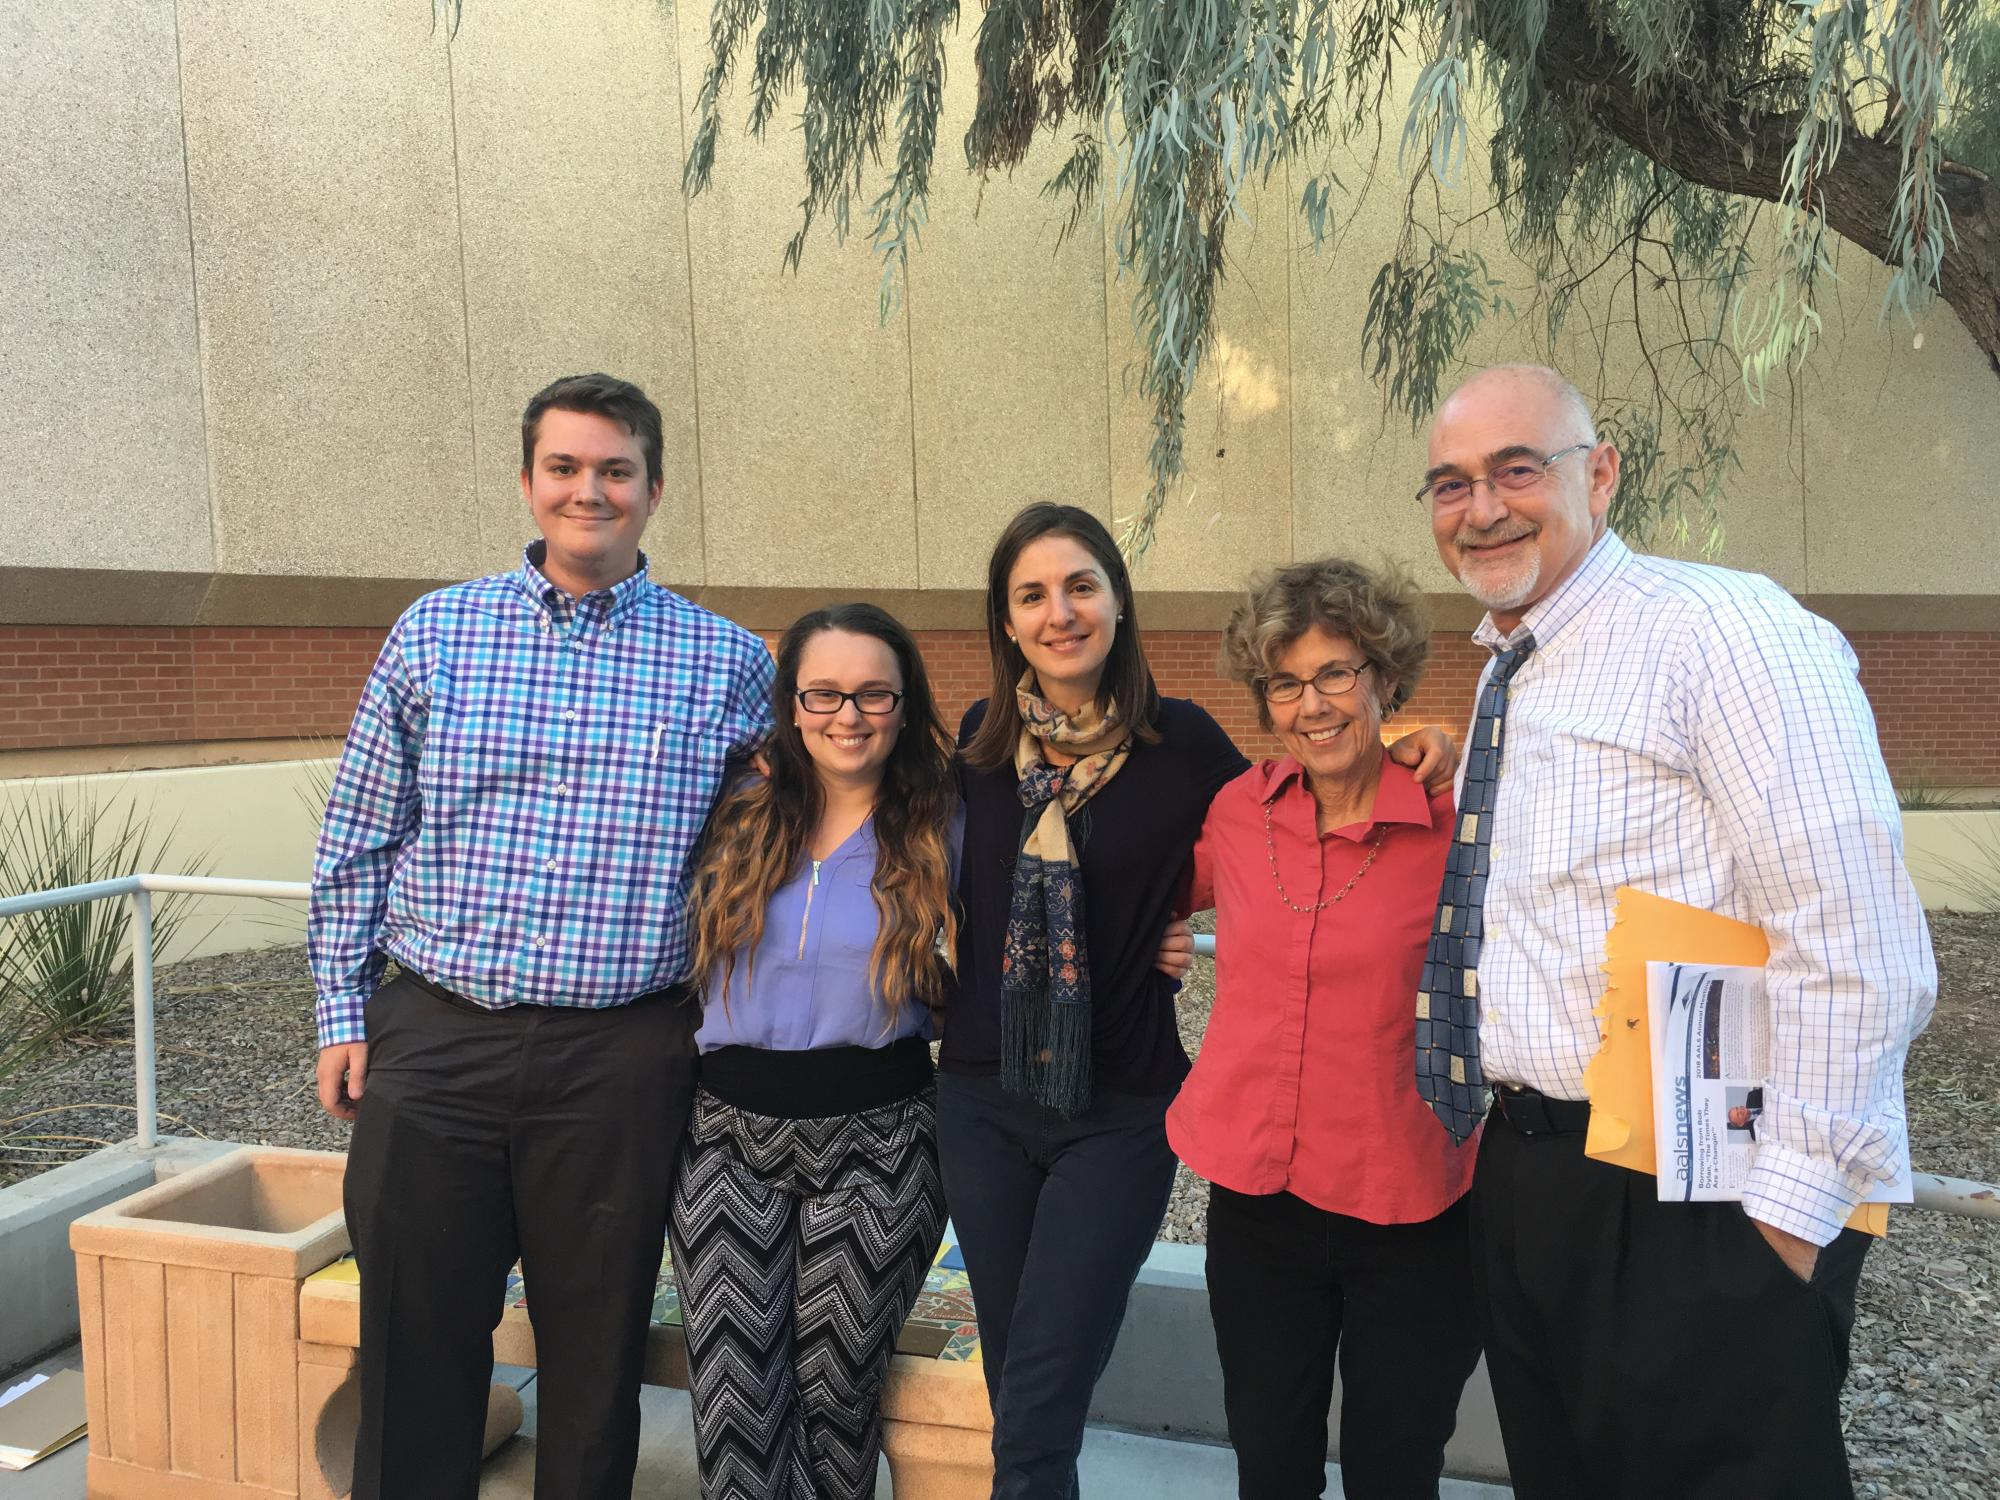 Amicus brief authors at the Arizona Supreme Court: UA students Chris Lloyd and Natalie Cafasso, and UA faculty Negar Katirai, Barbara Atwood and Paul Bennett.